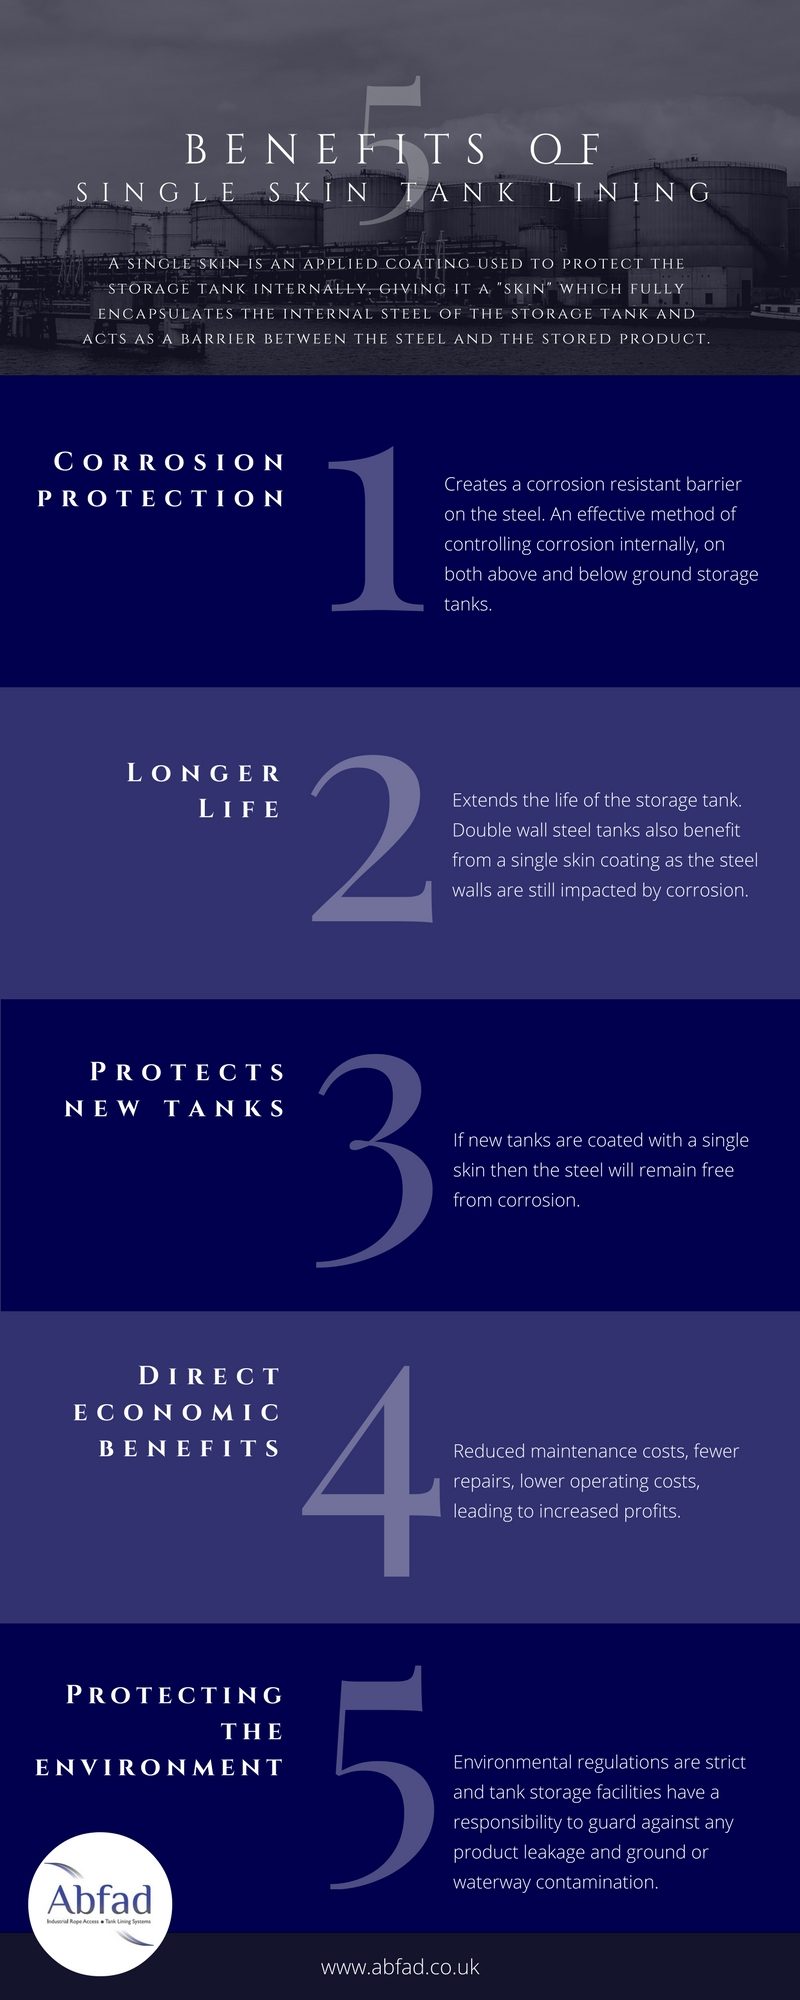 5 benefits of single skin tank lining infographic